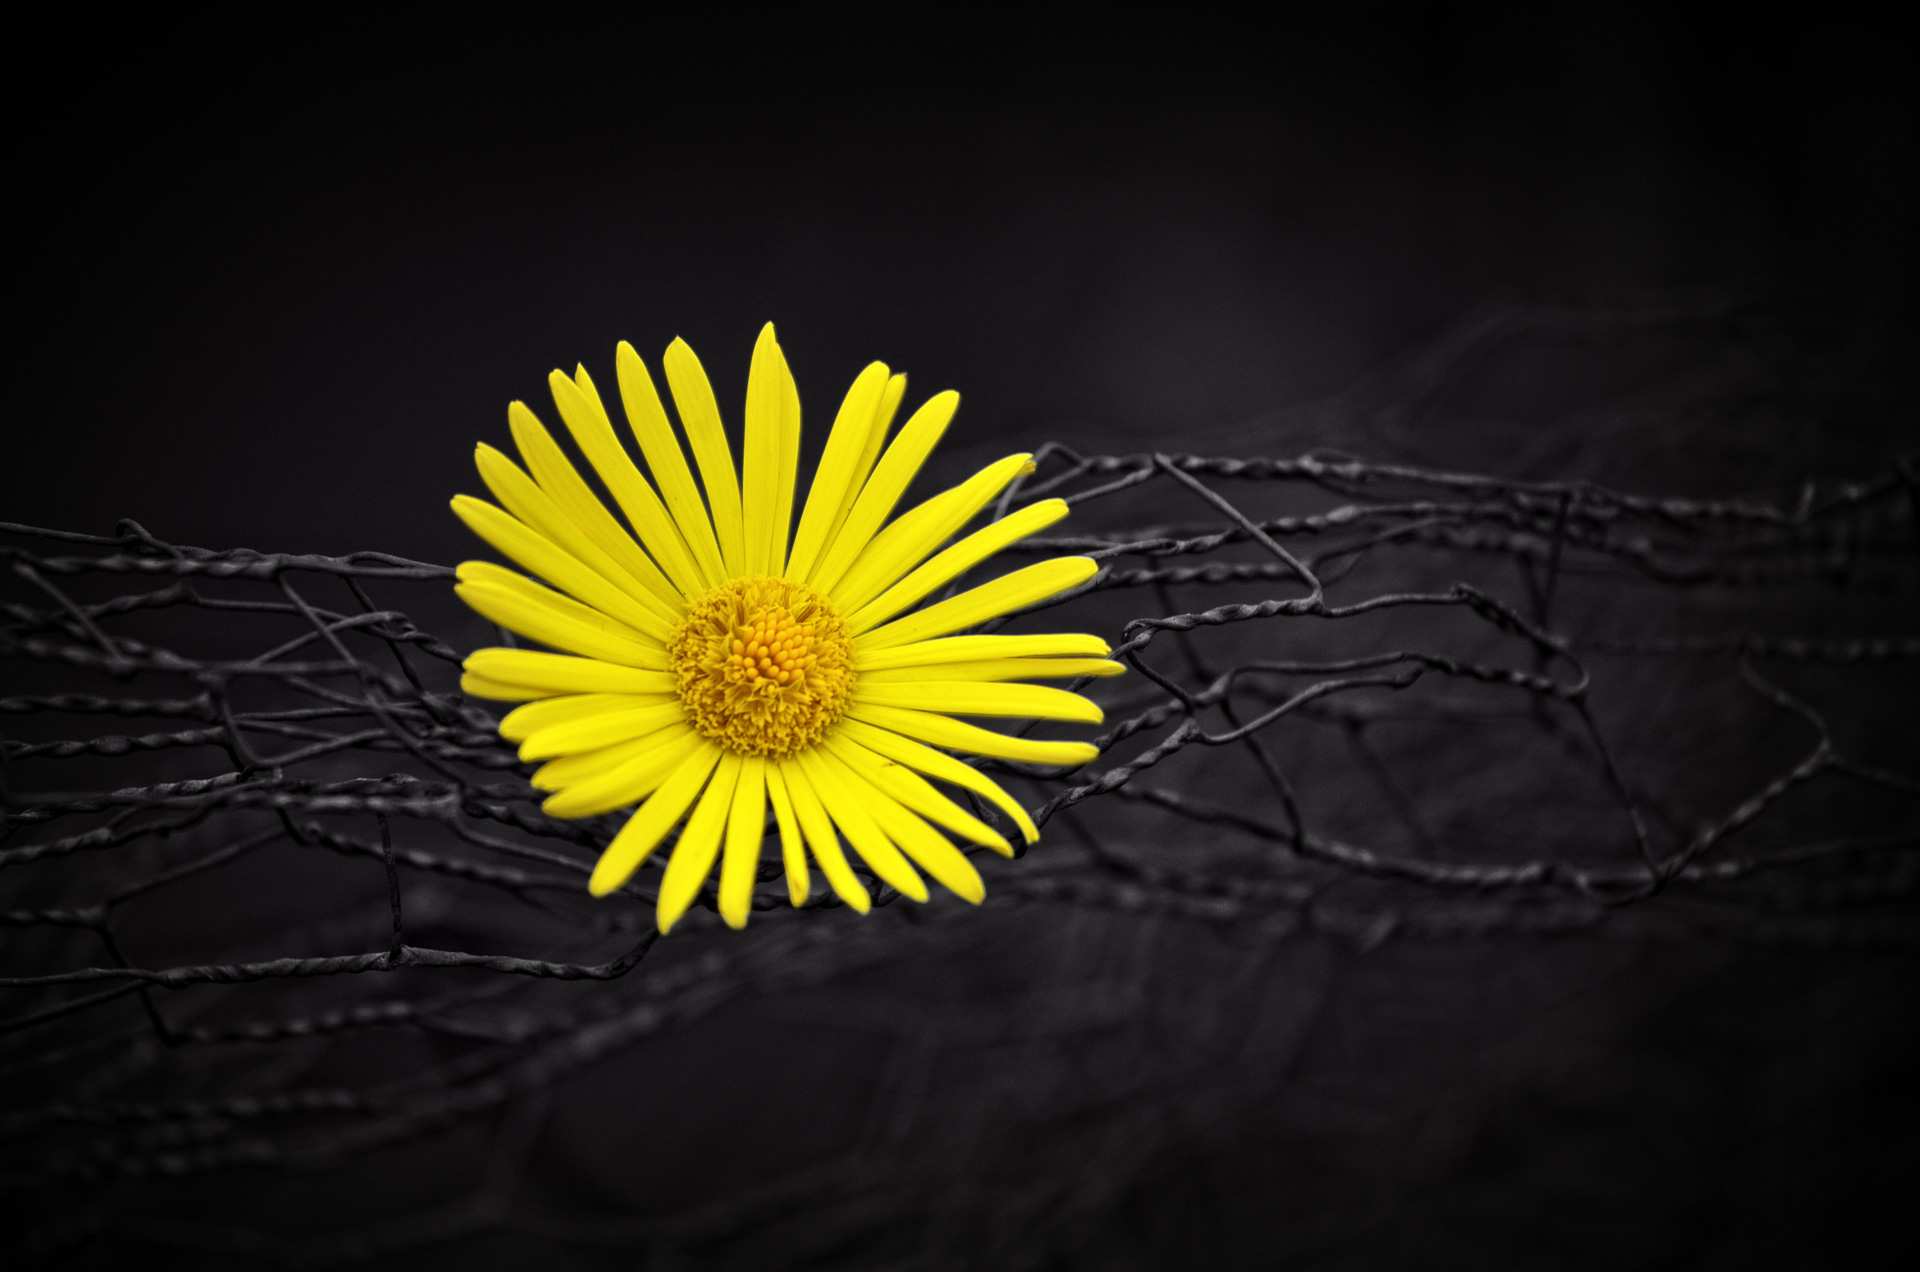 yellow flower fence dark black background hd flowers 4k wallpapers images backgrounds photos and pictures yellow flower fence dark black